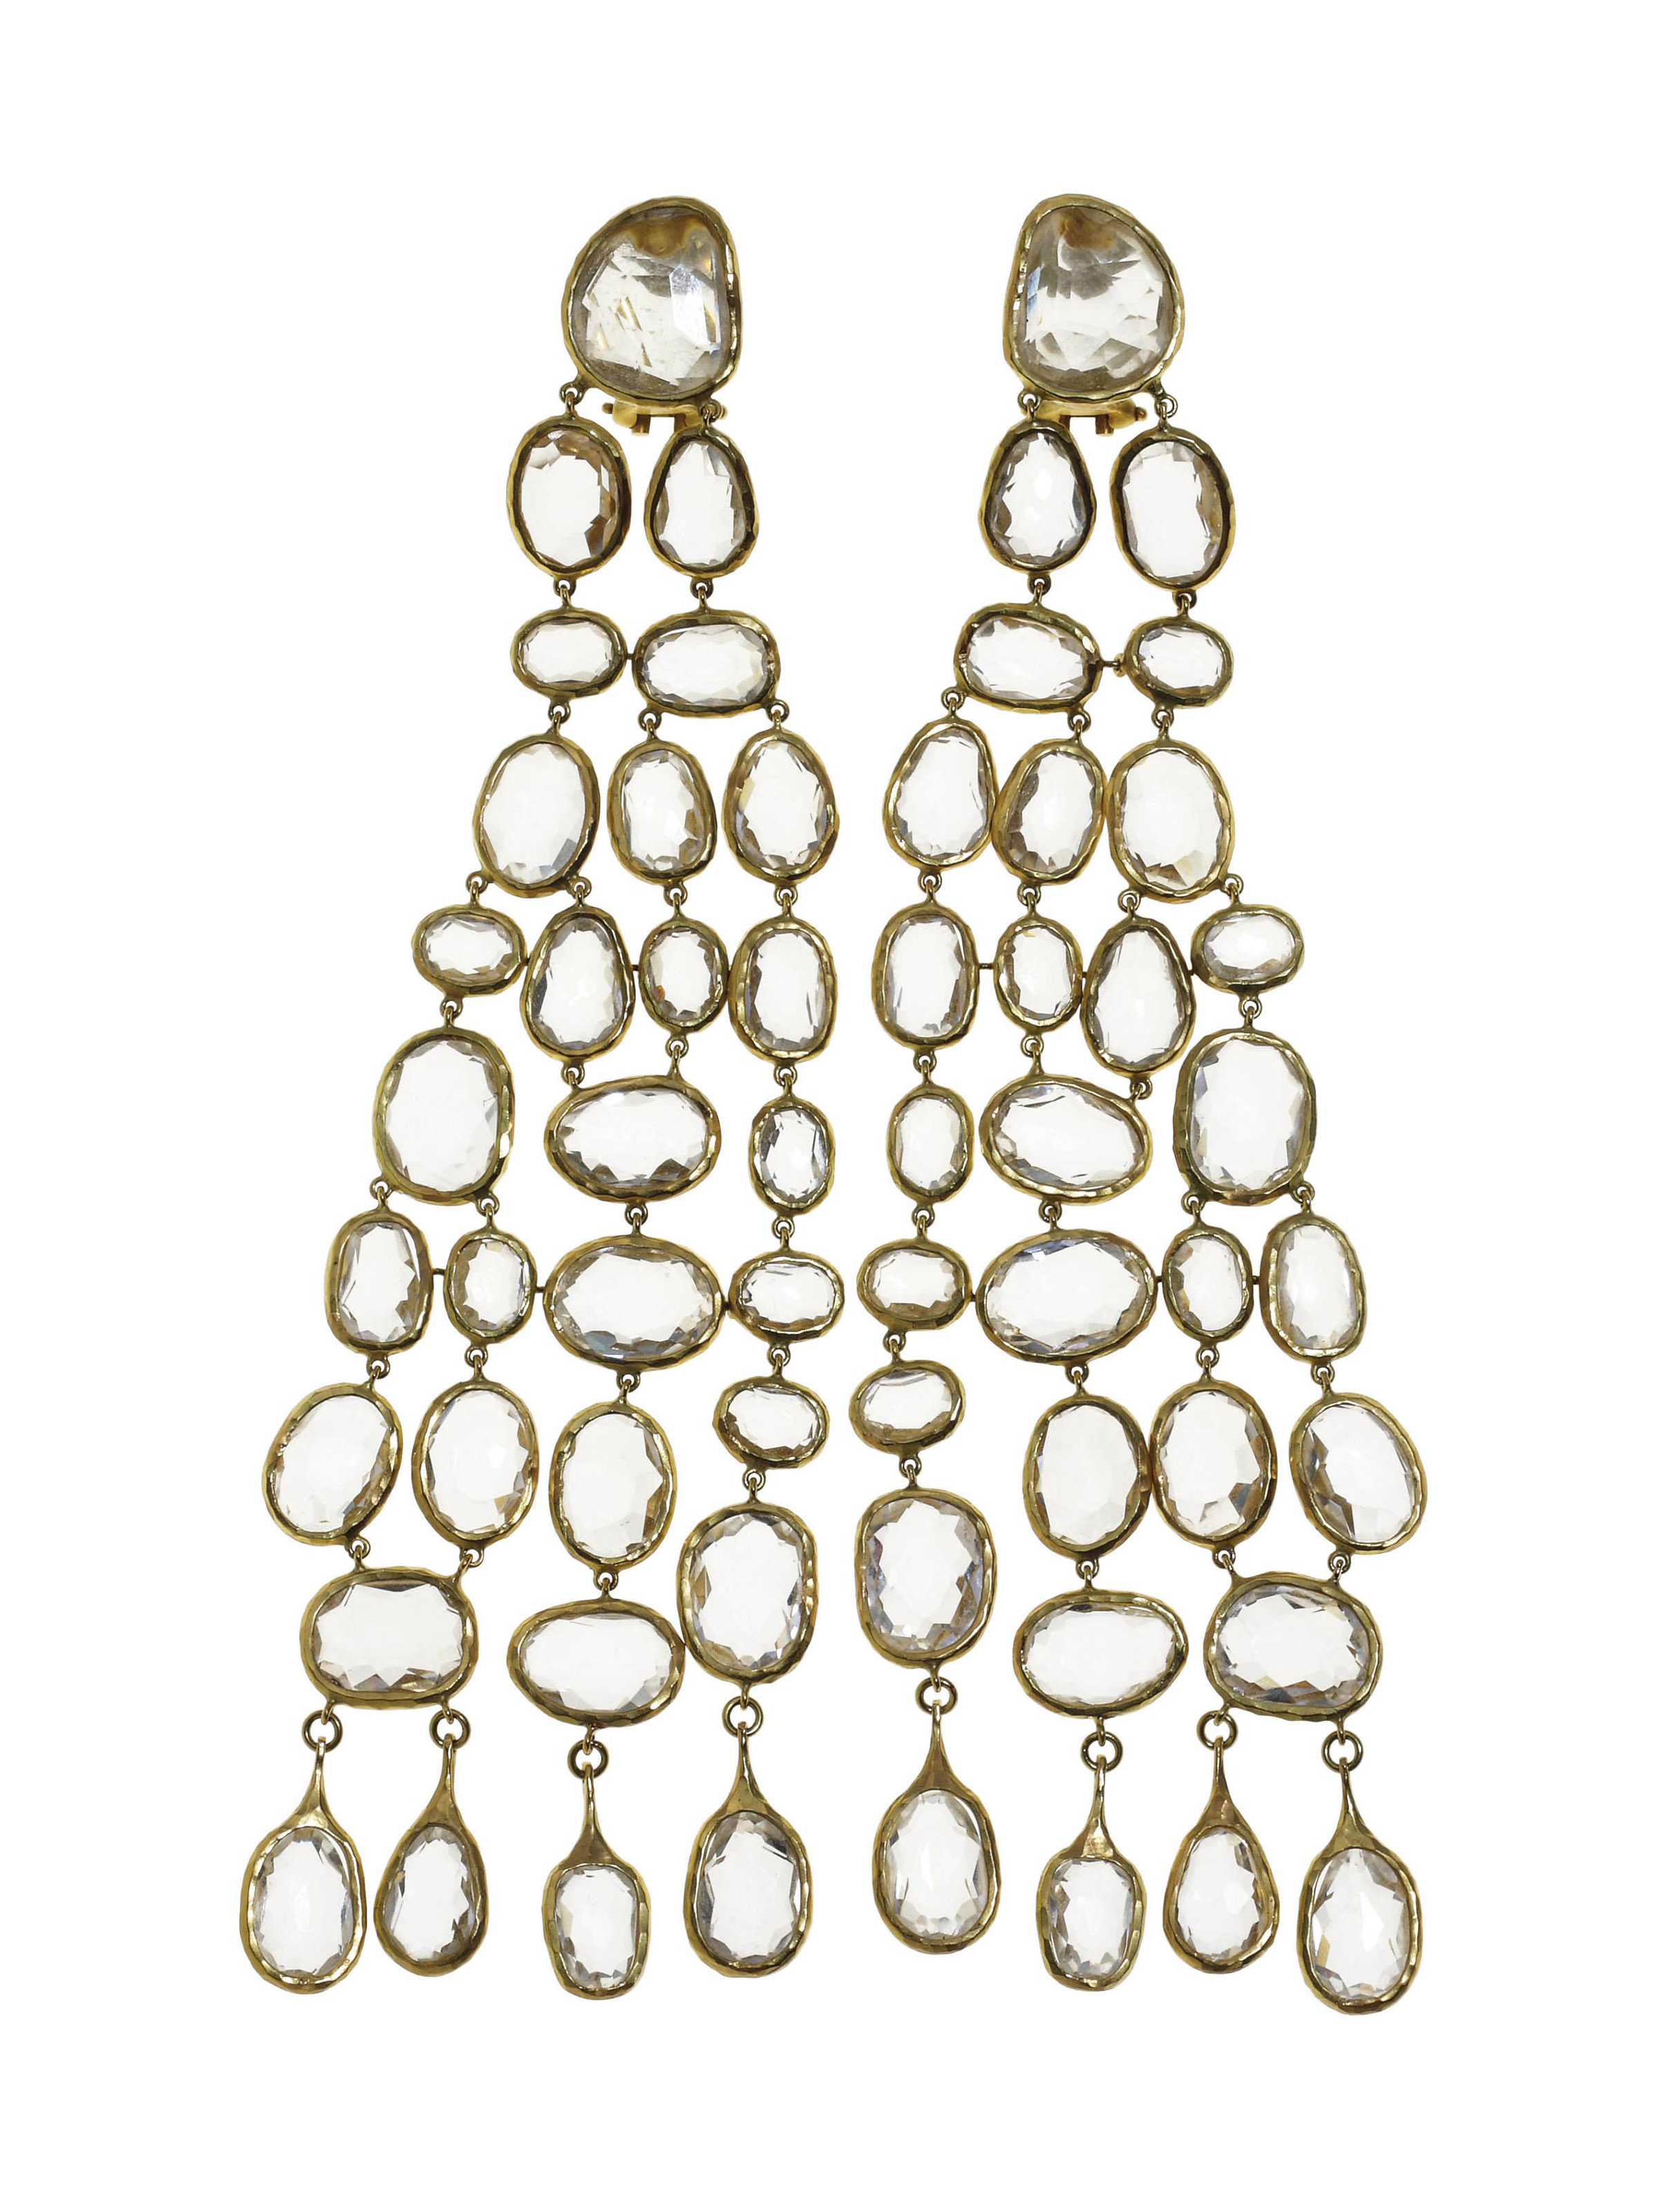 A PAIR OF ROCK CRYSTAL AND GOLD EAR PENDANTS, BY GUCCI